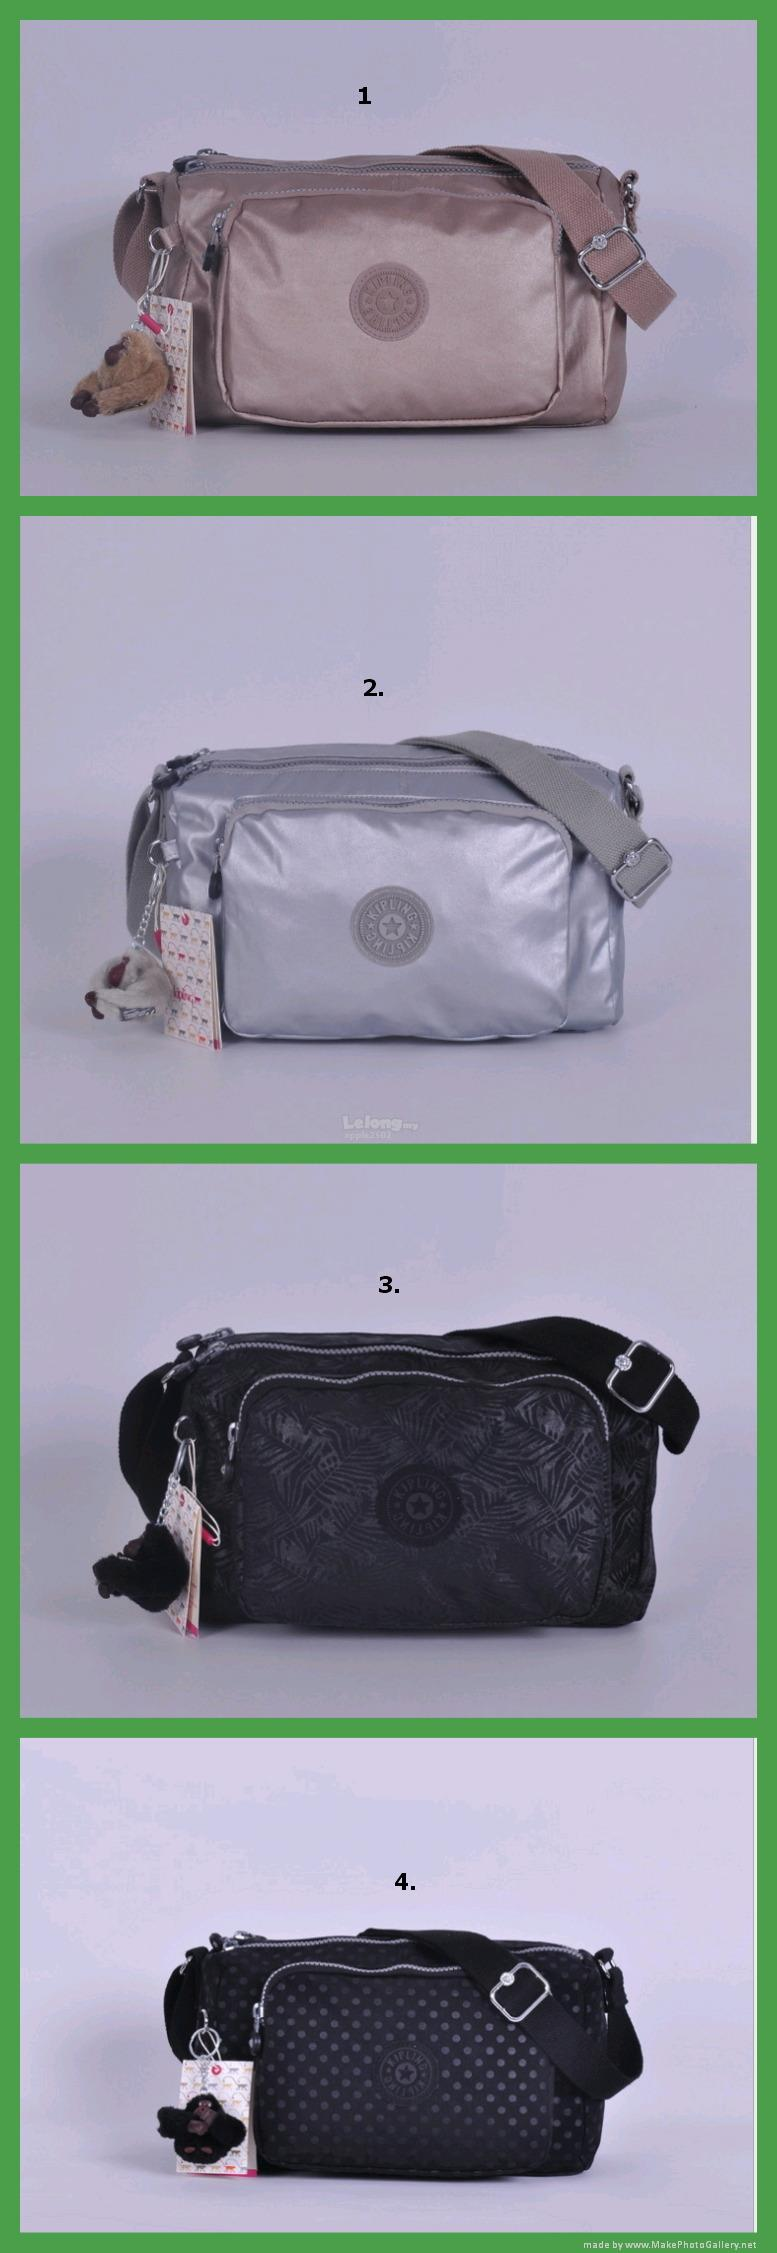 KIPLING NYLON COLOUR CROSS BODY/SLING BAG*SZ2969